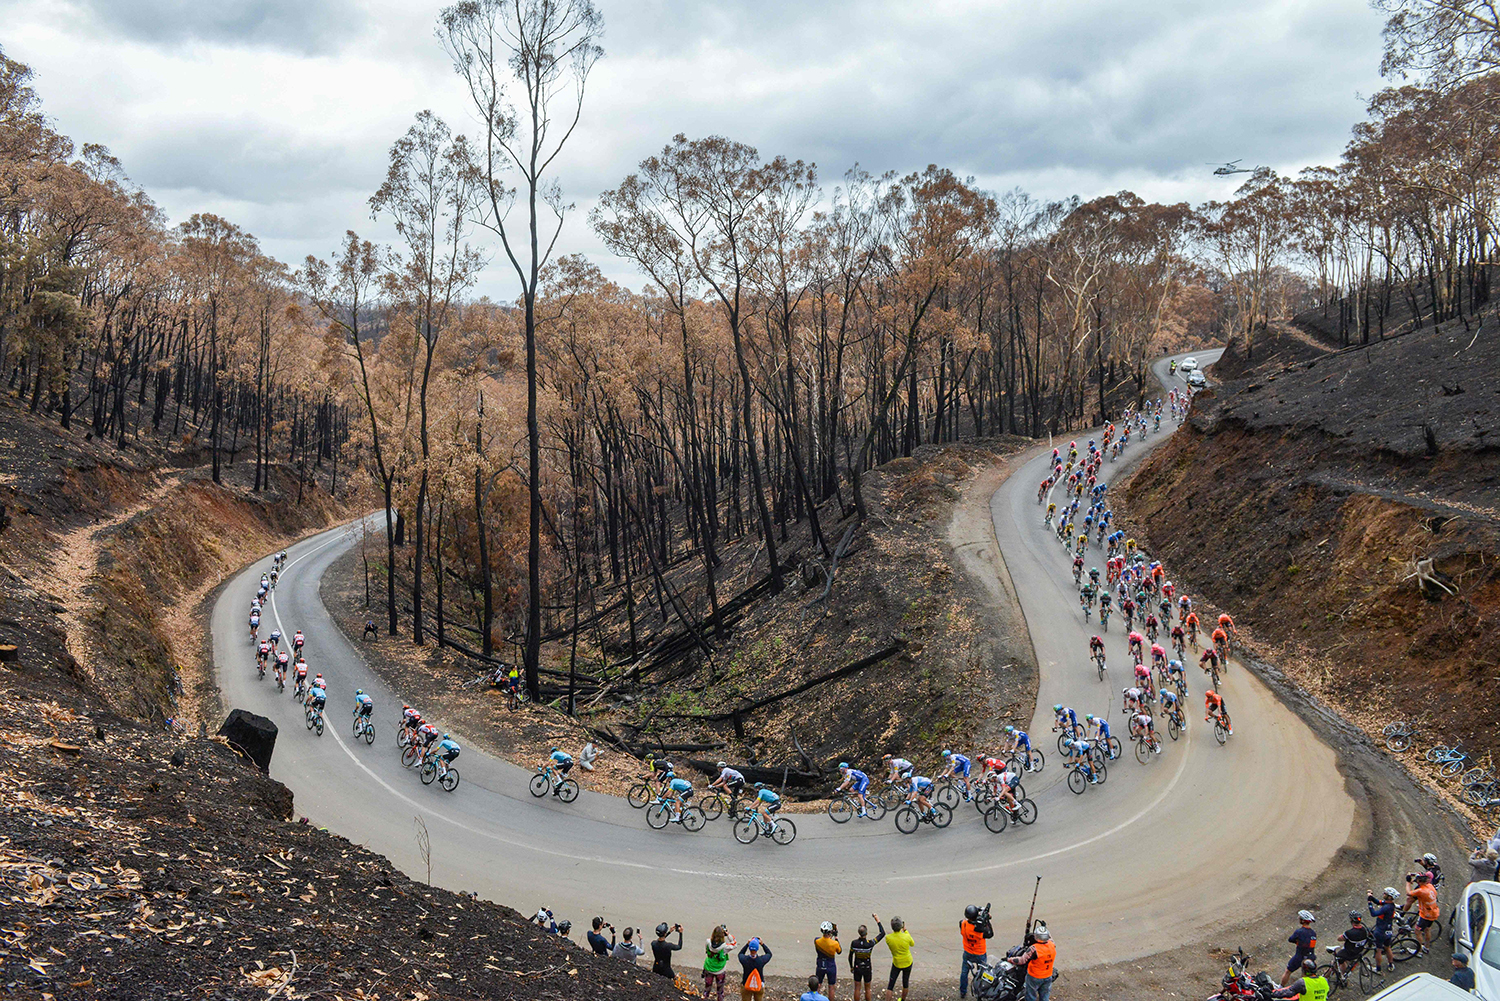 Cyclists ride through fire-ravaged Fox Creek Road near Cudlee Creek during Stage 3 of the Tour Down Under UCI World Tour cycling event through the Adelaide Hills, South Australia, on Jan. 23.  BRENTON EDWARDS/AFP via Getty Images